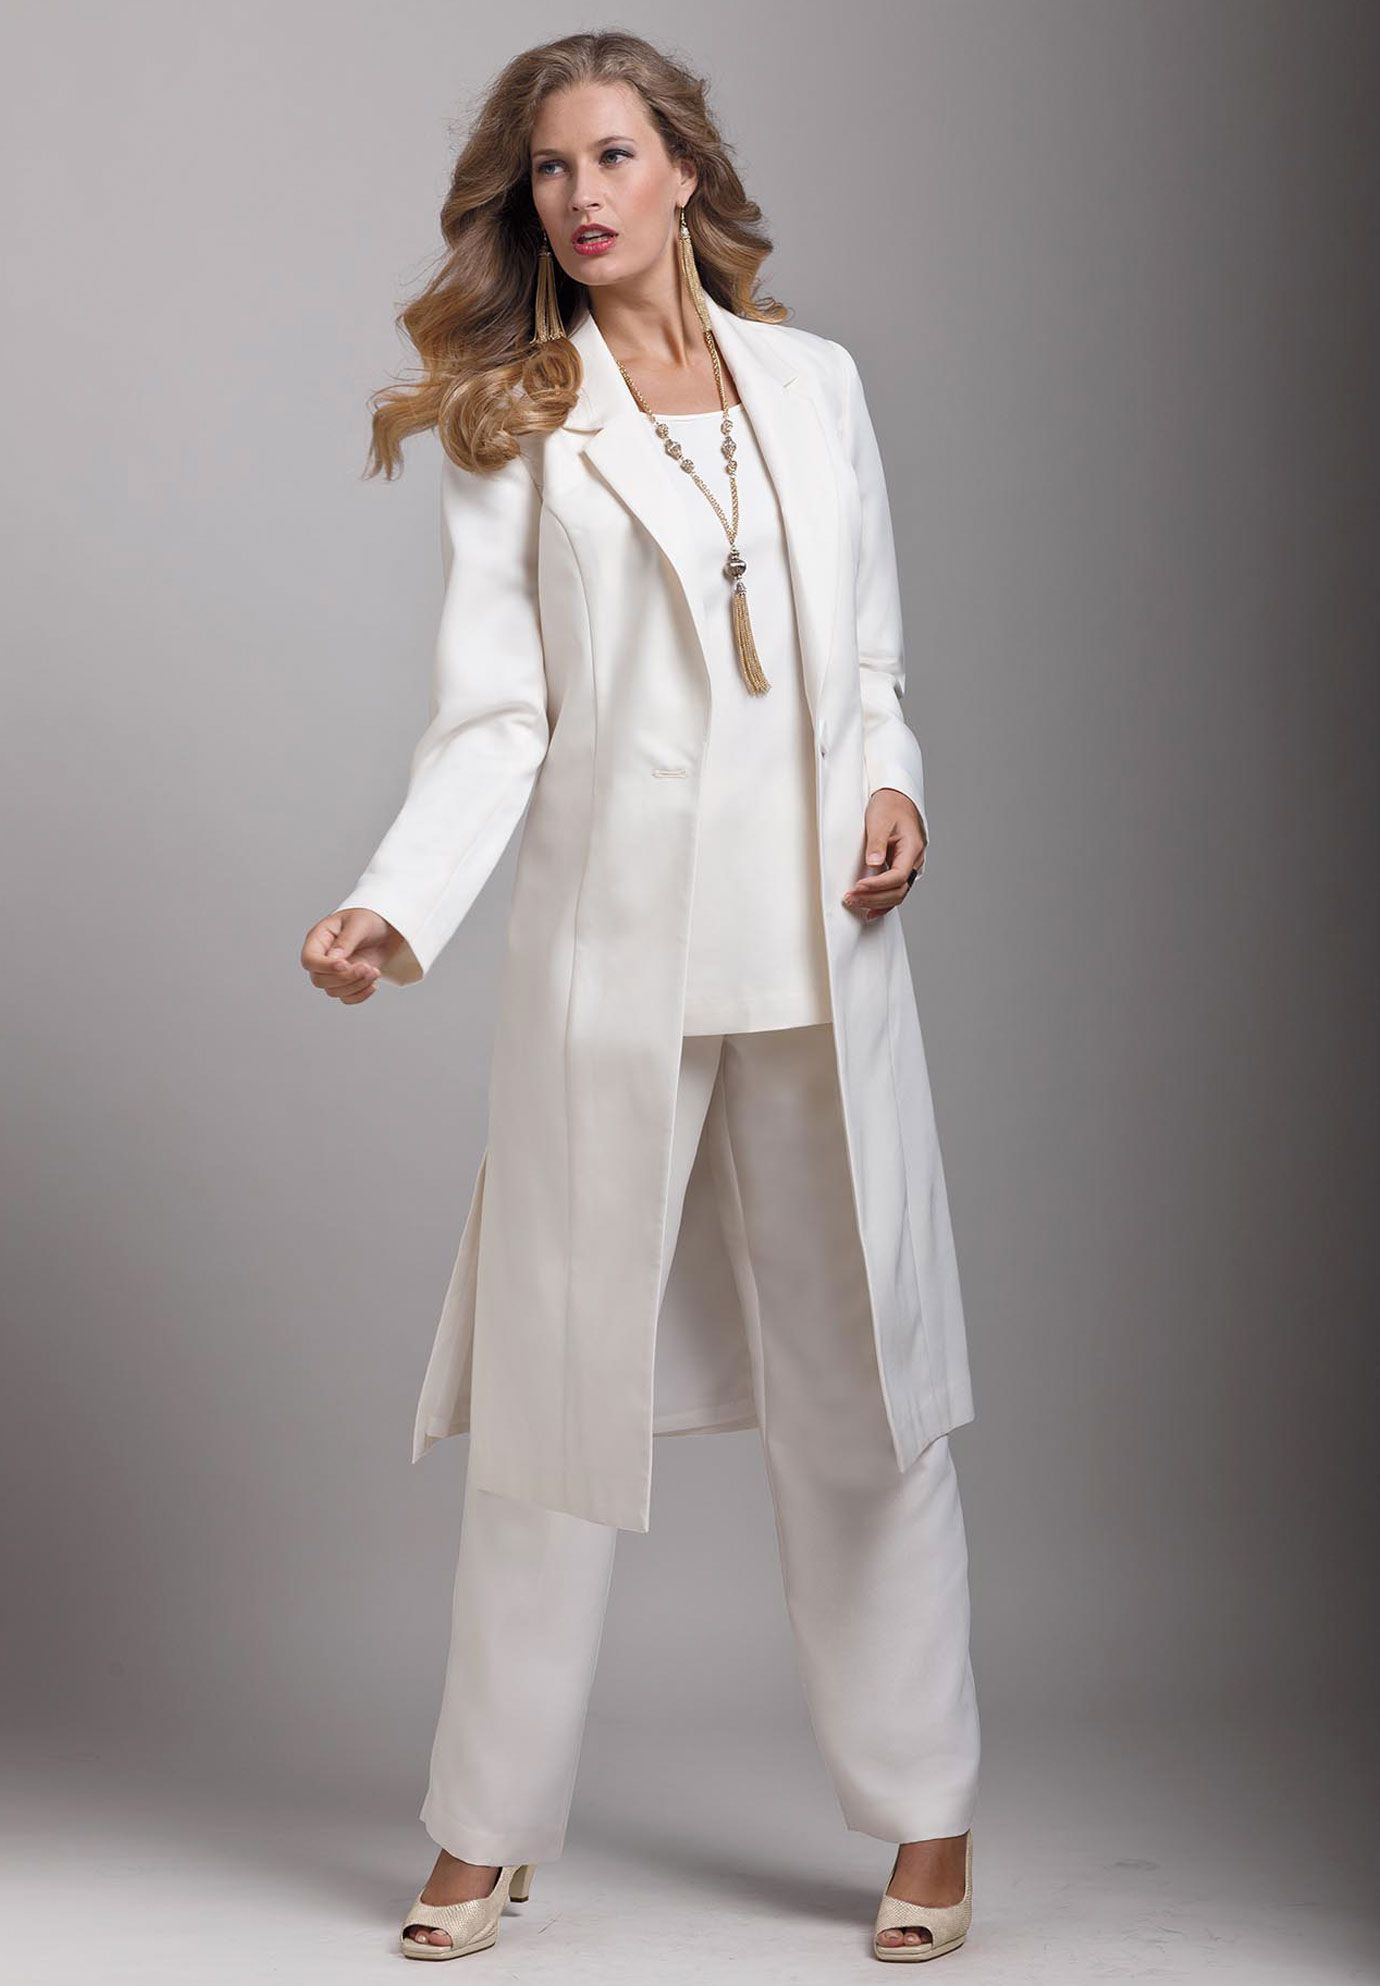 Wedding Pant Suits Mother Bride Mother Of The Bride